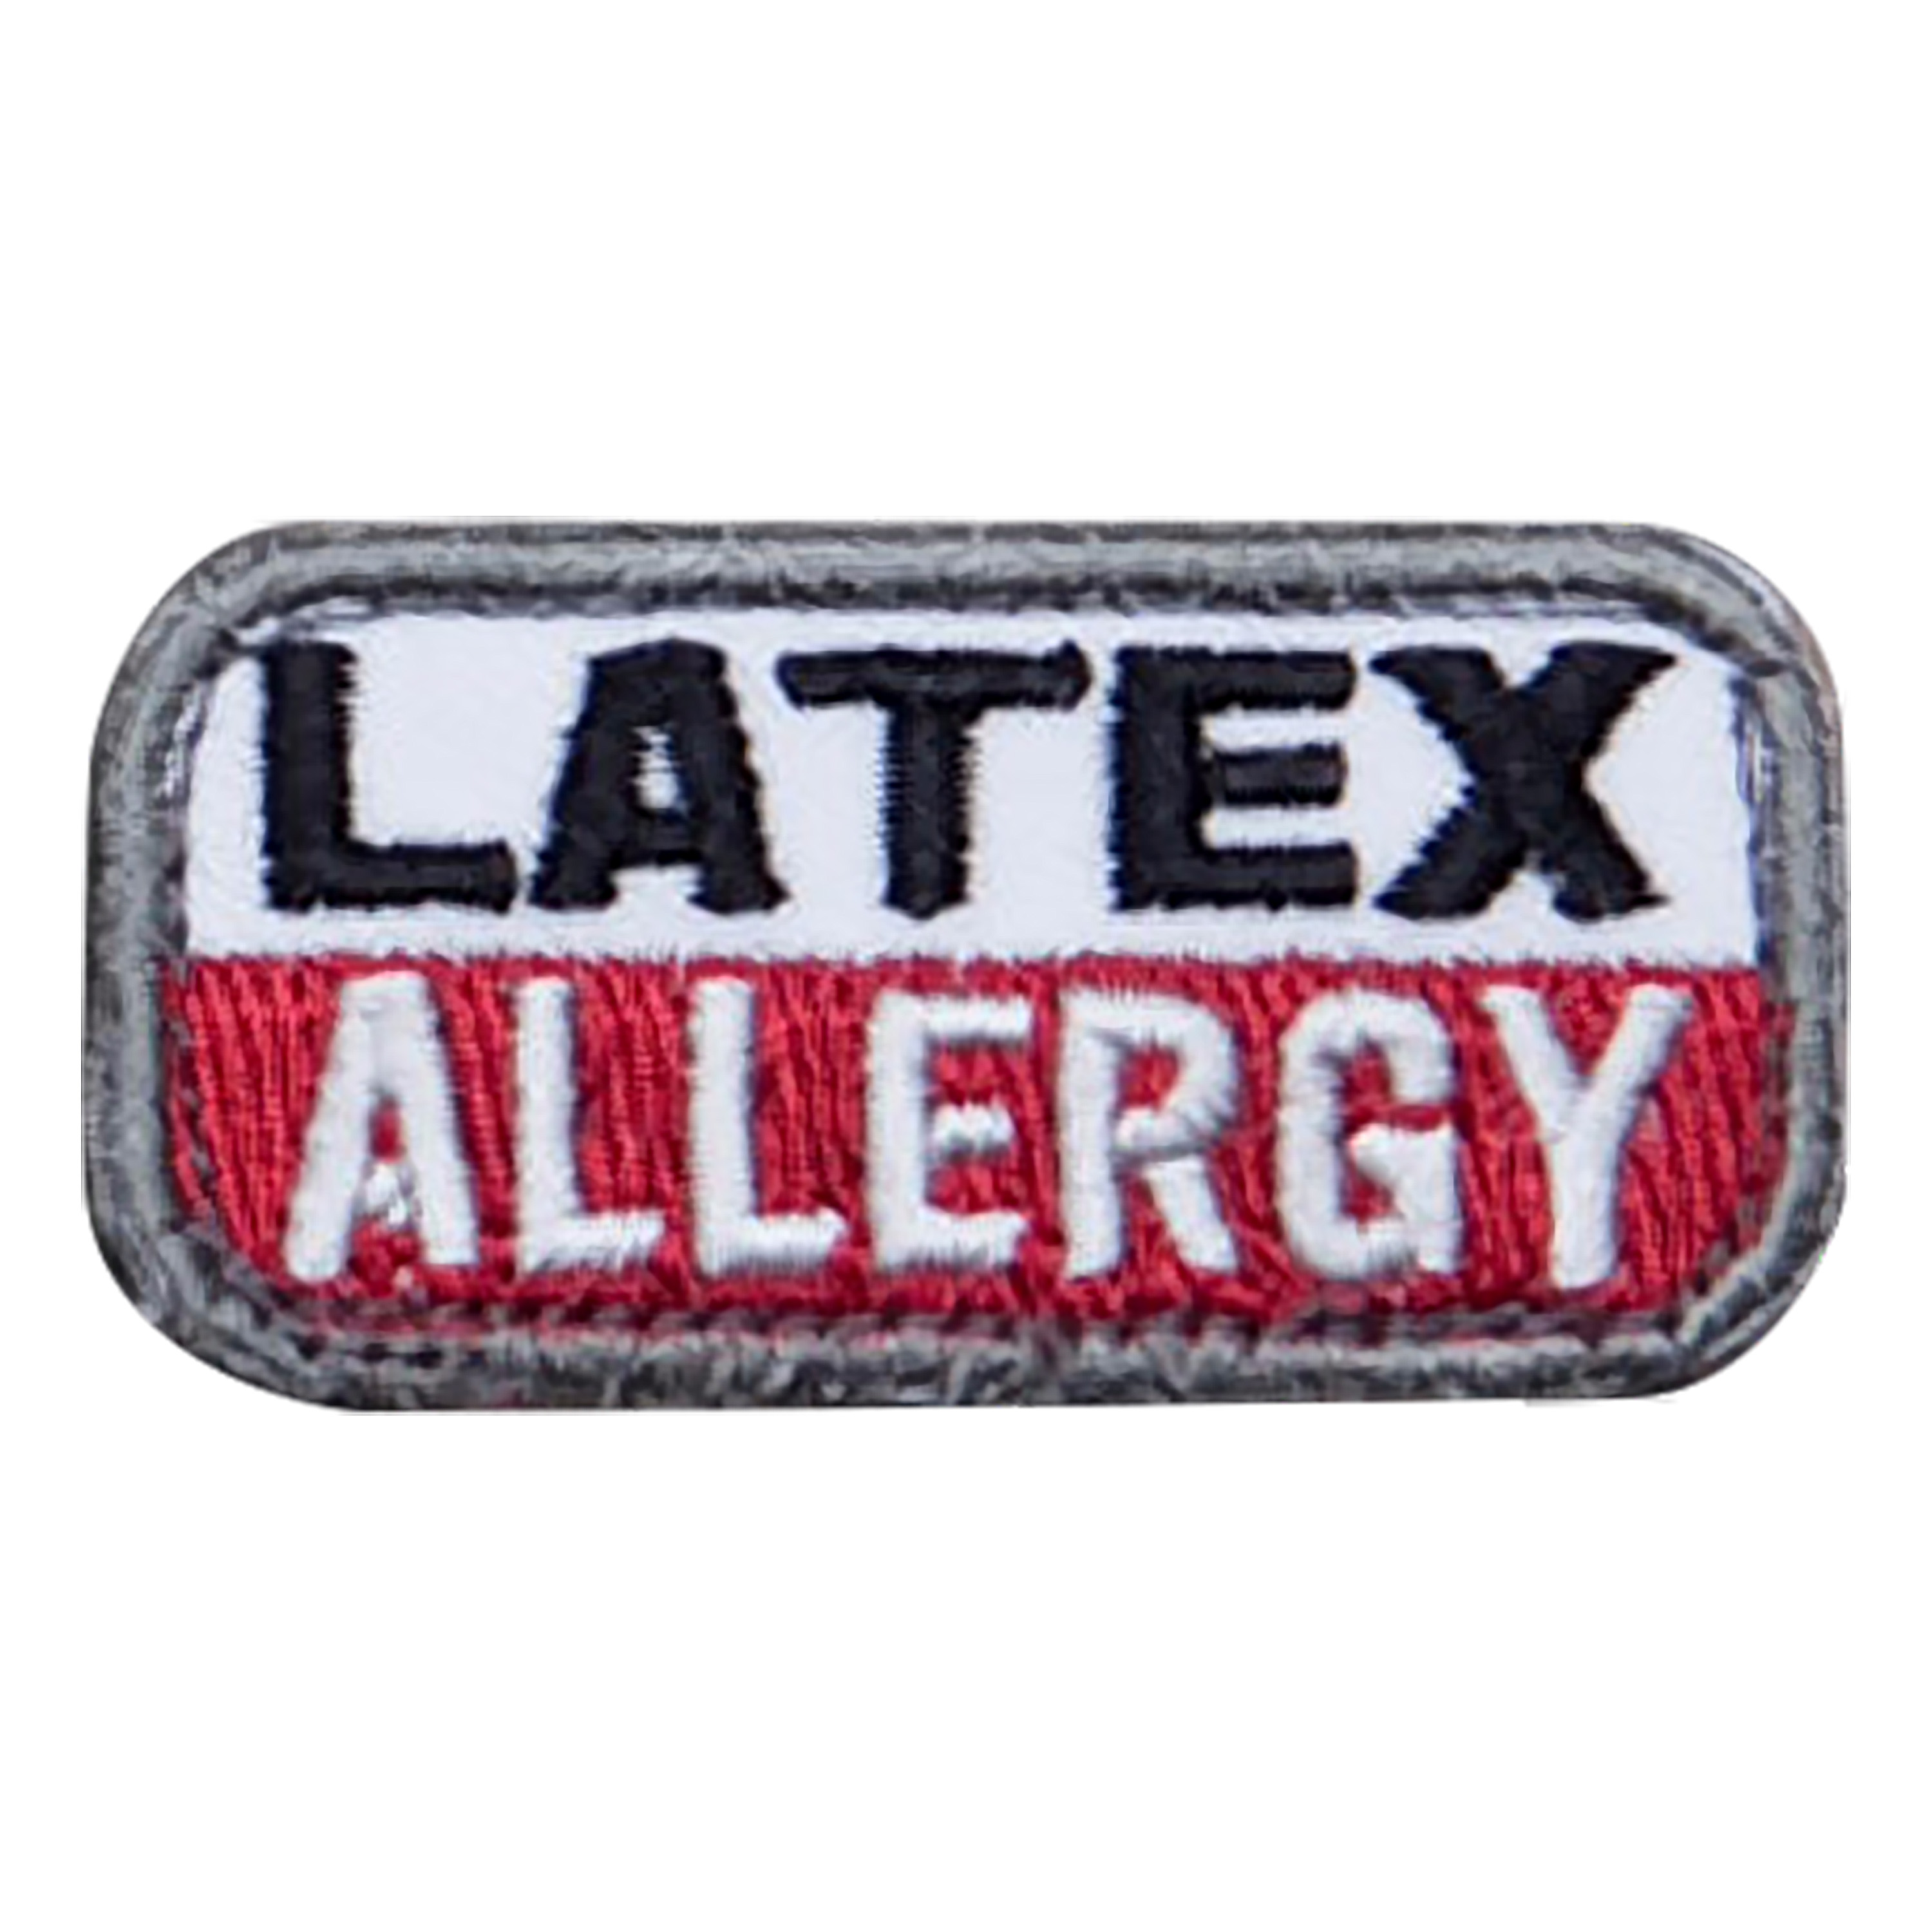 MilSpecMonkey Patch Latex Allergy medical